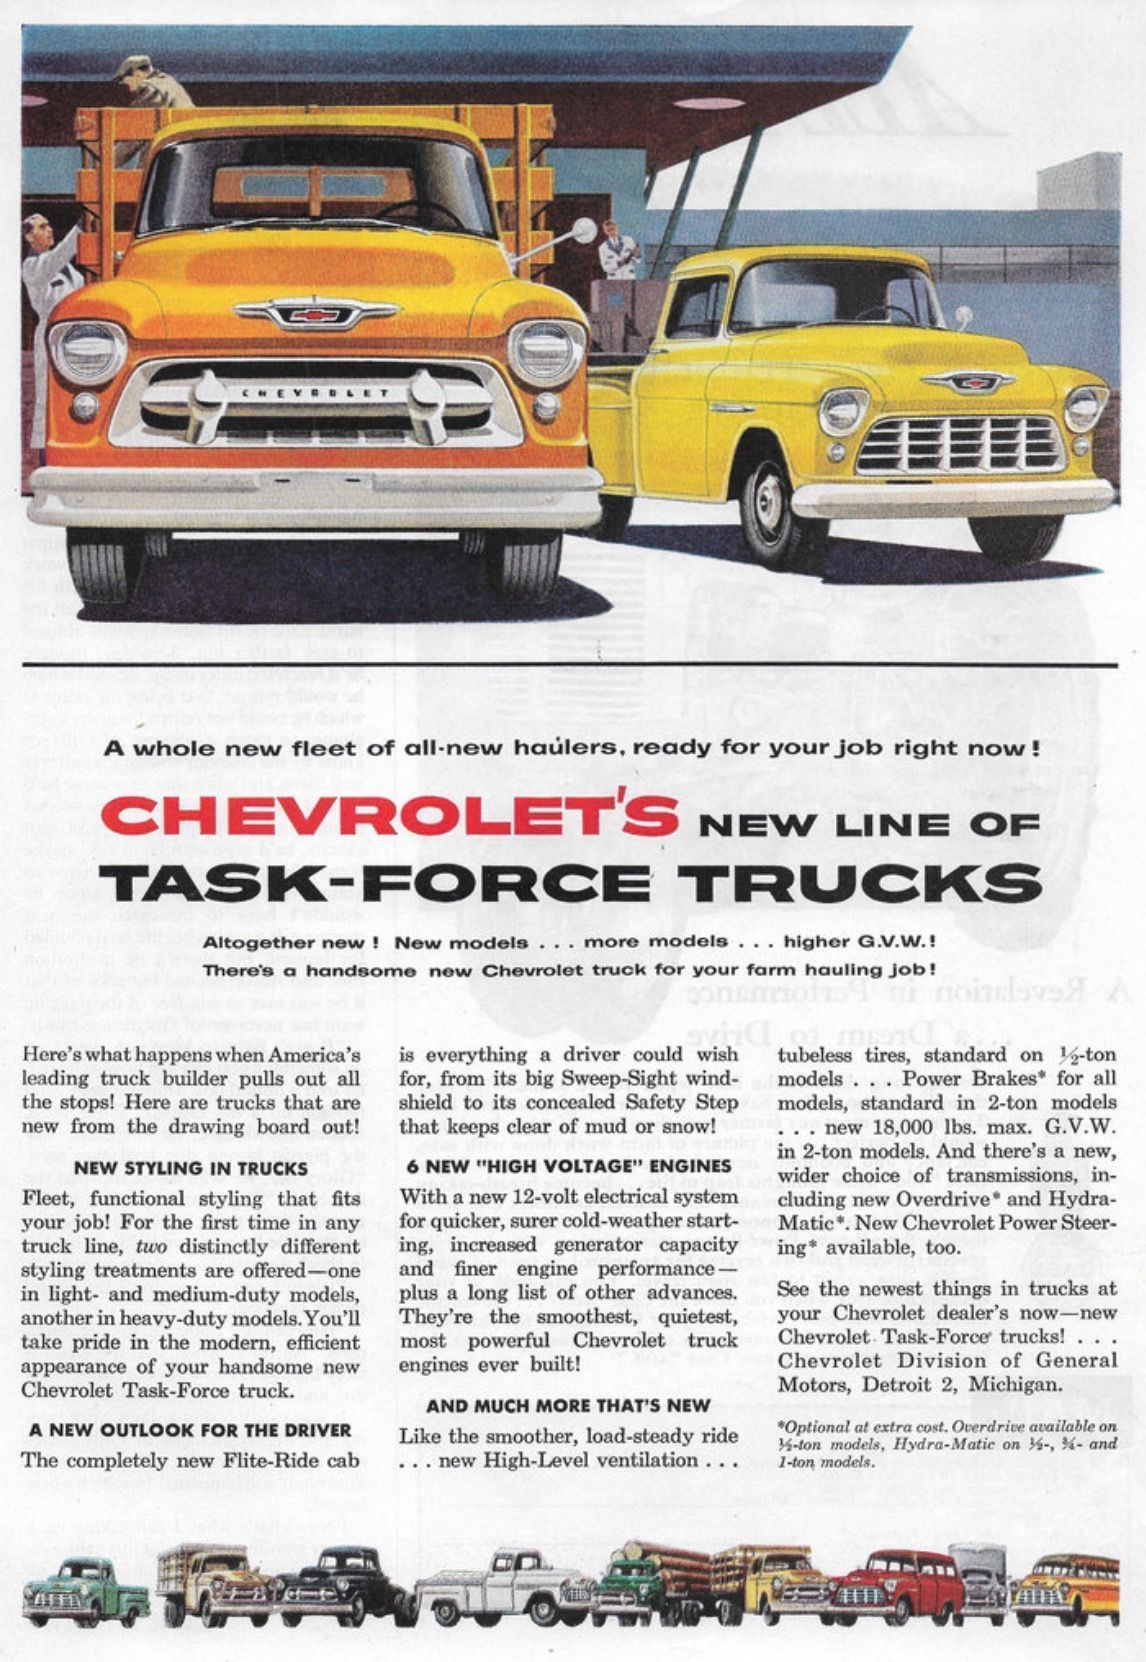 1955 Chevrolet Trucks 2nd Series Usa By Michael On Flickr Chevroletvintagecars New Chevrolet Trucks Chevrolet Trucks Chevy Trucks